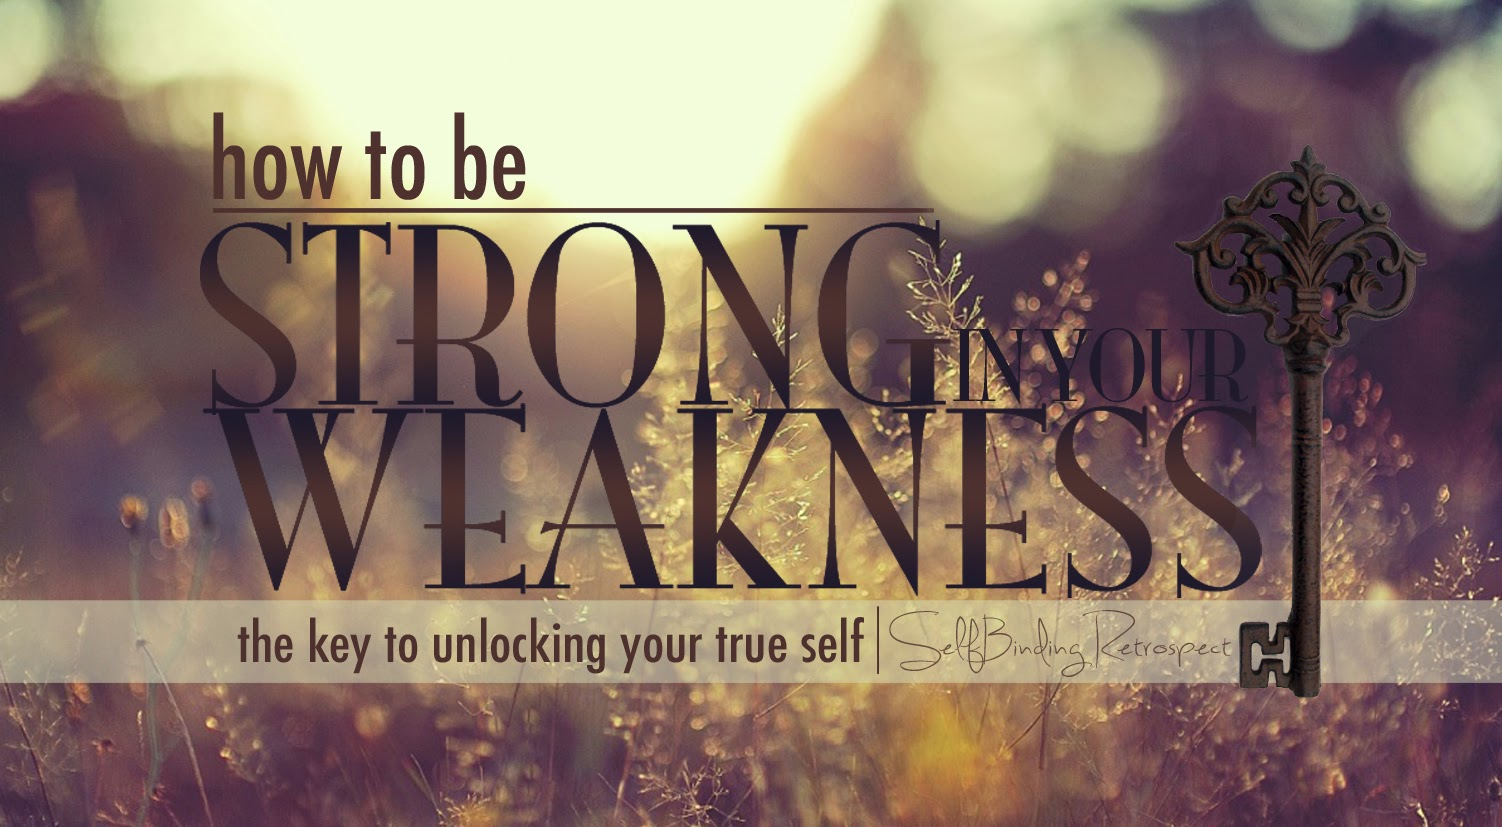 How to be strong in your weakness - SelfBinding Retrospect by Alanna Rusnak